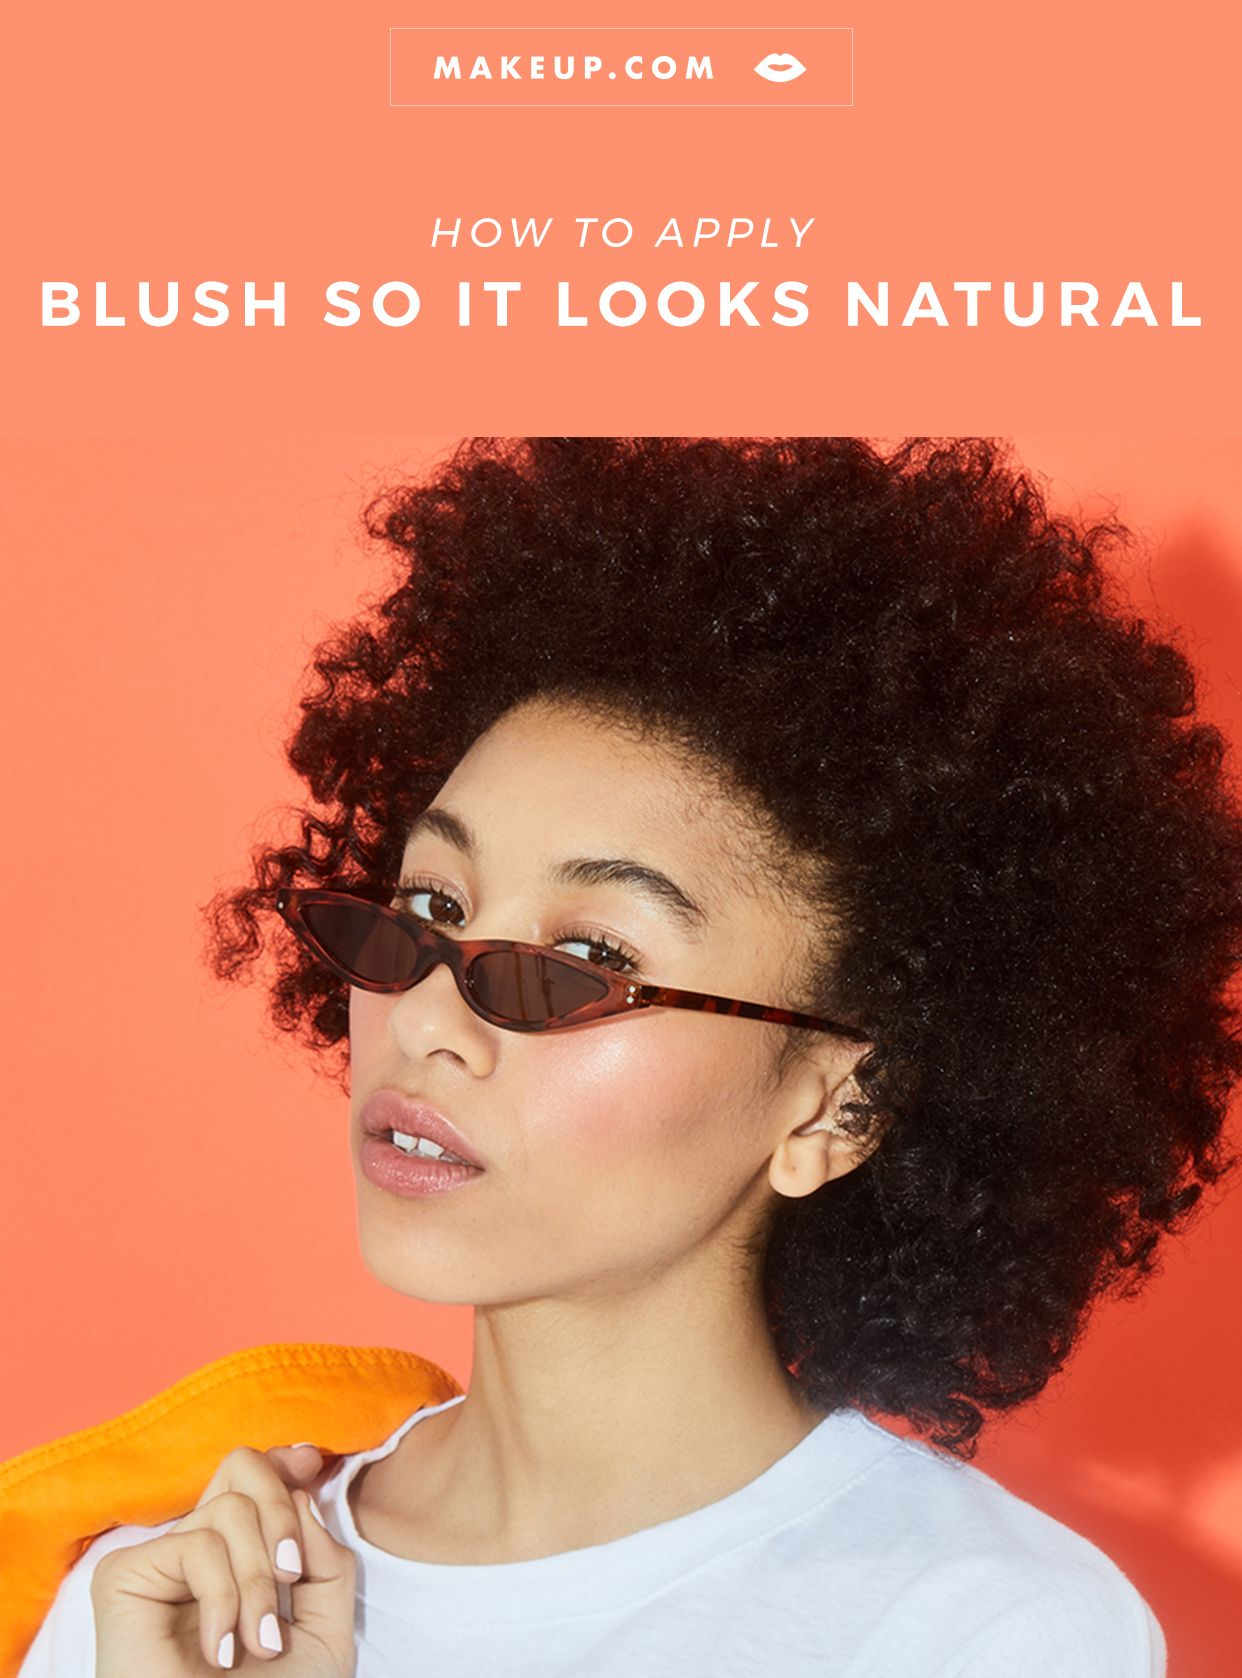 5 Tips for Natural Looking Blush   How to apply blush ...